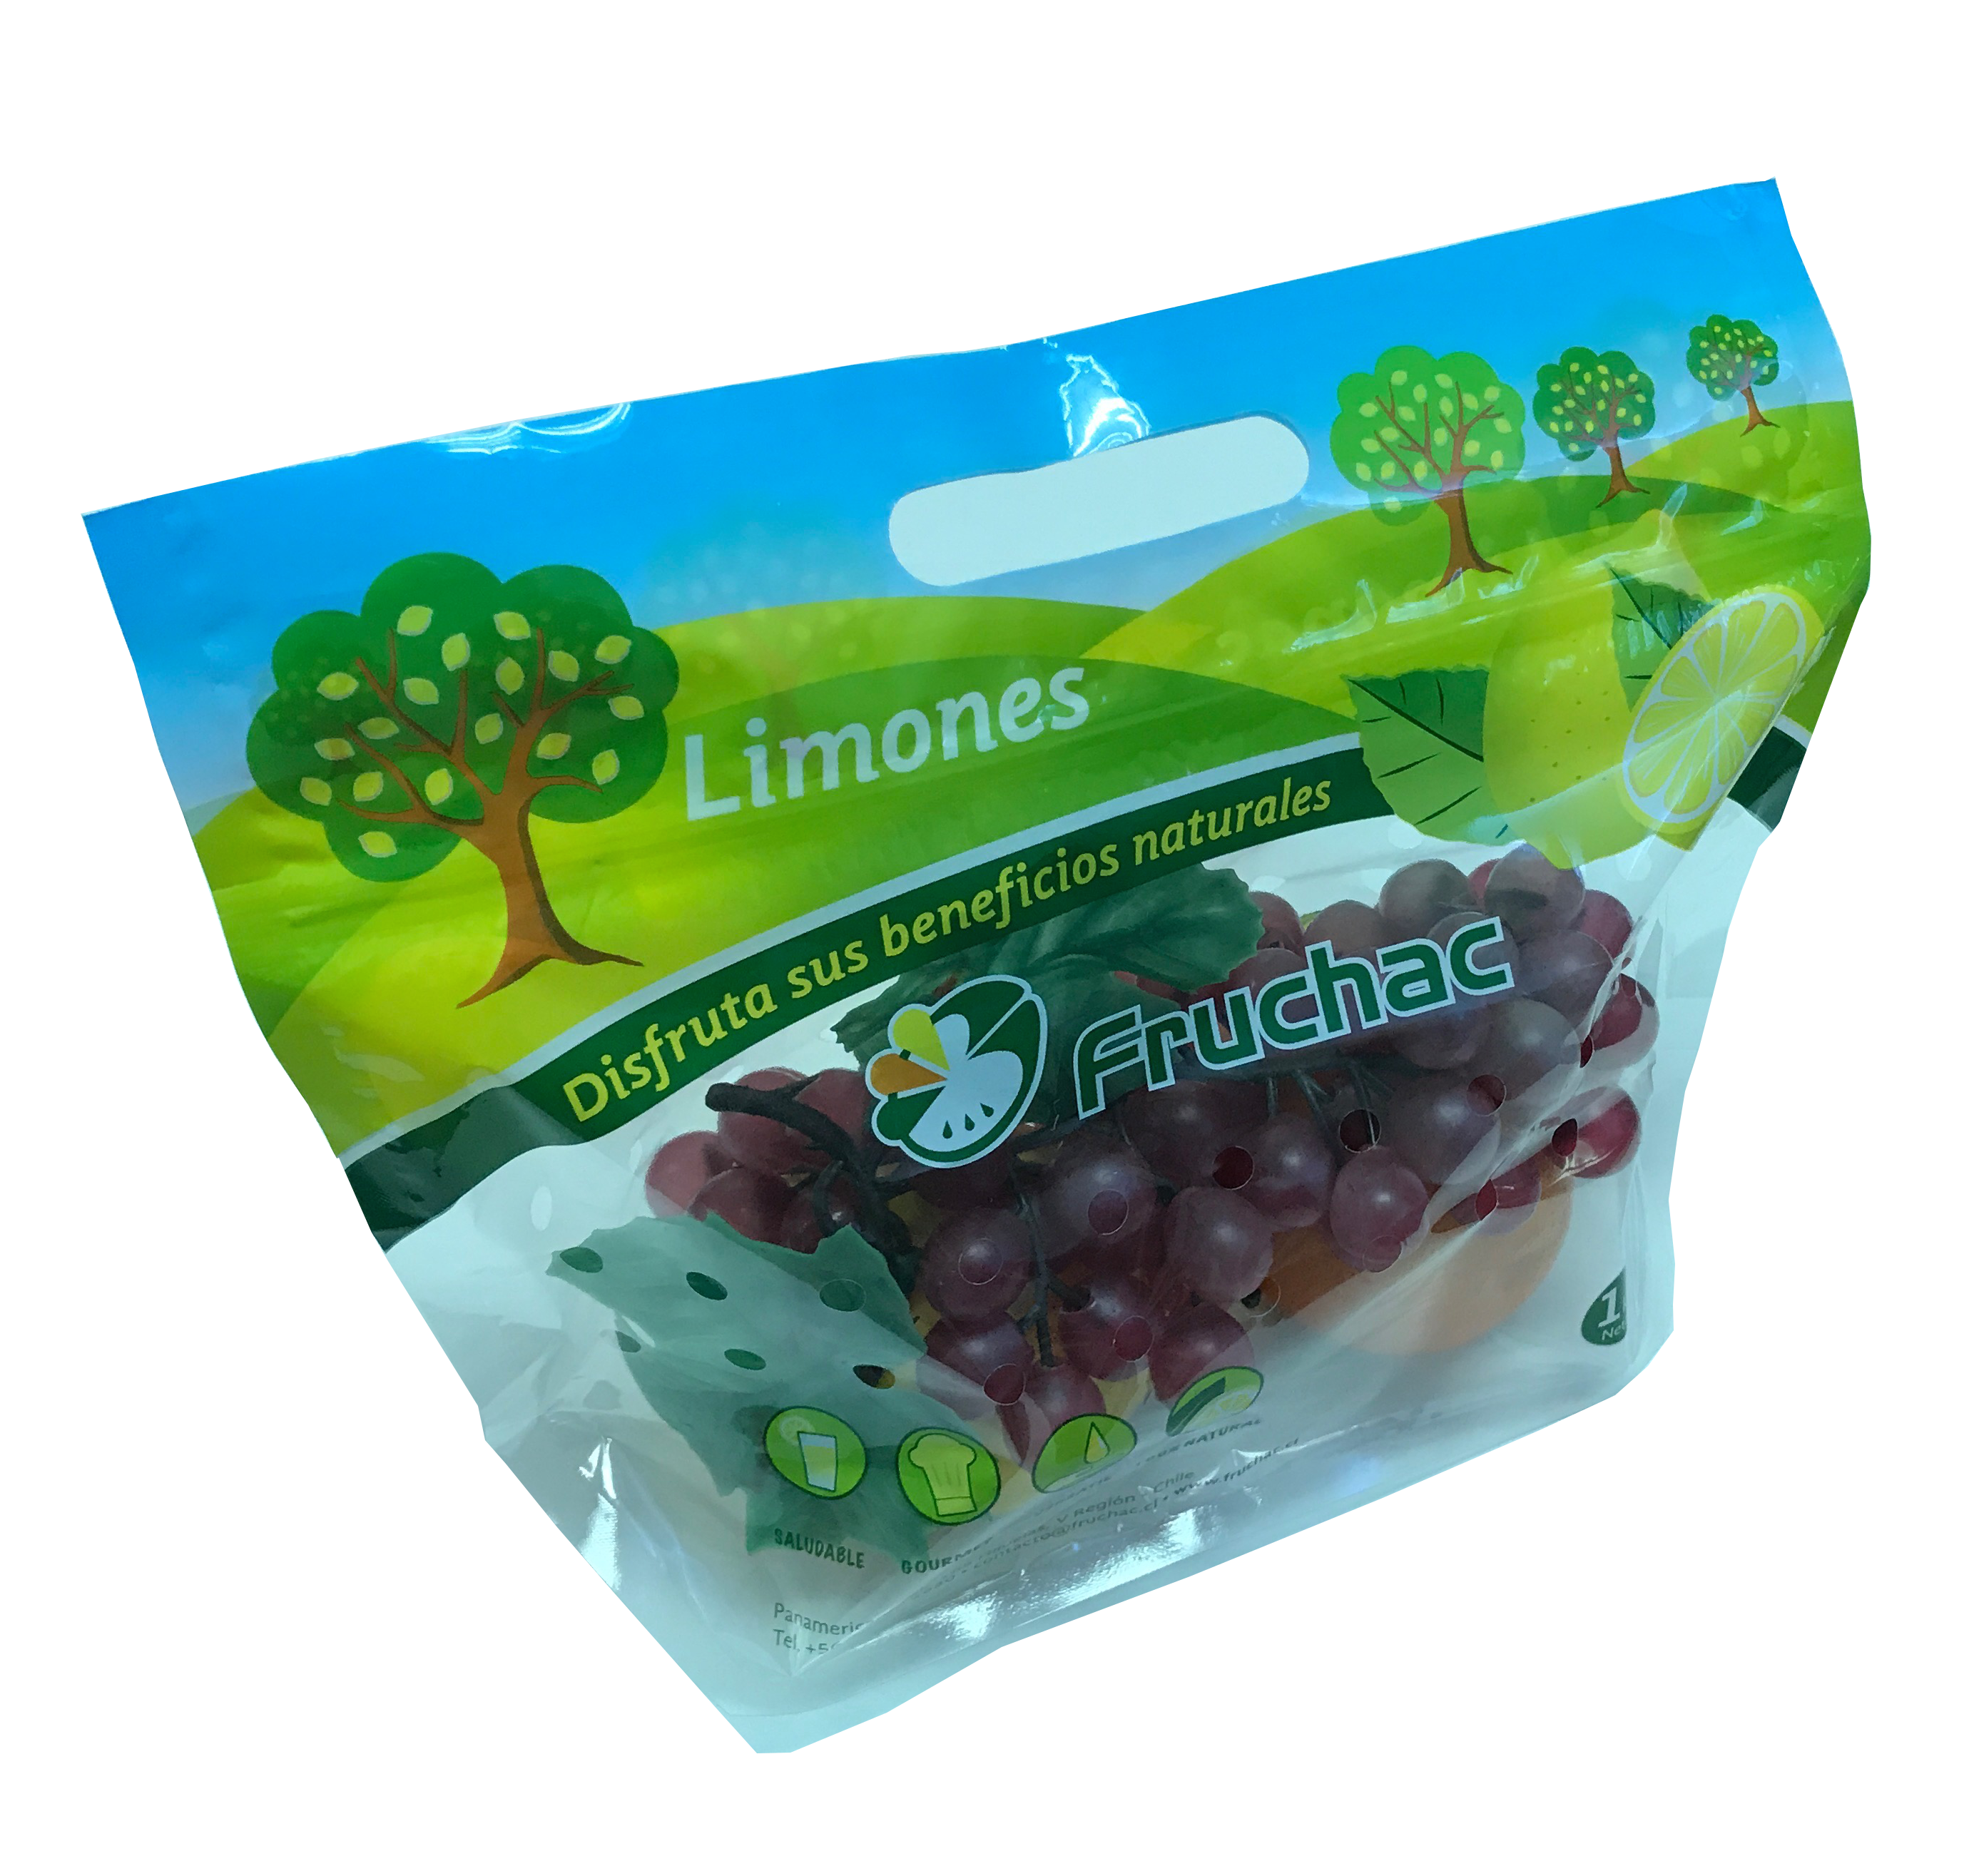 Fruits & Vegetable Bags by Utoc Singapore